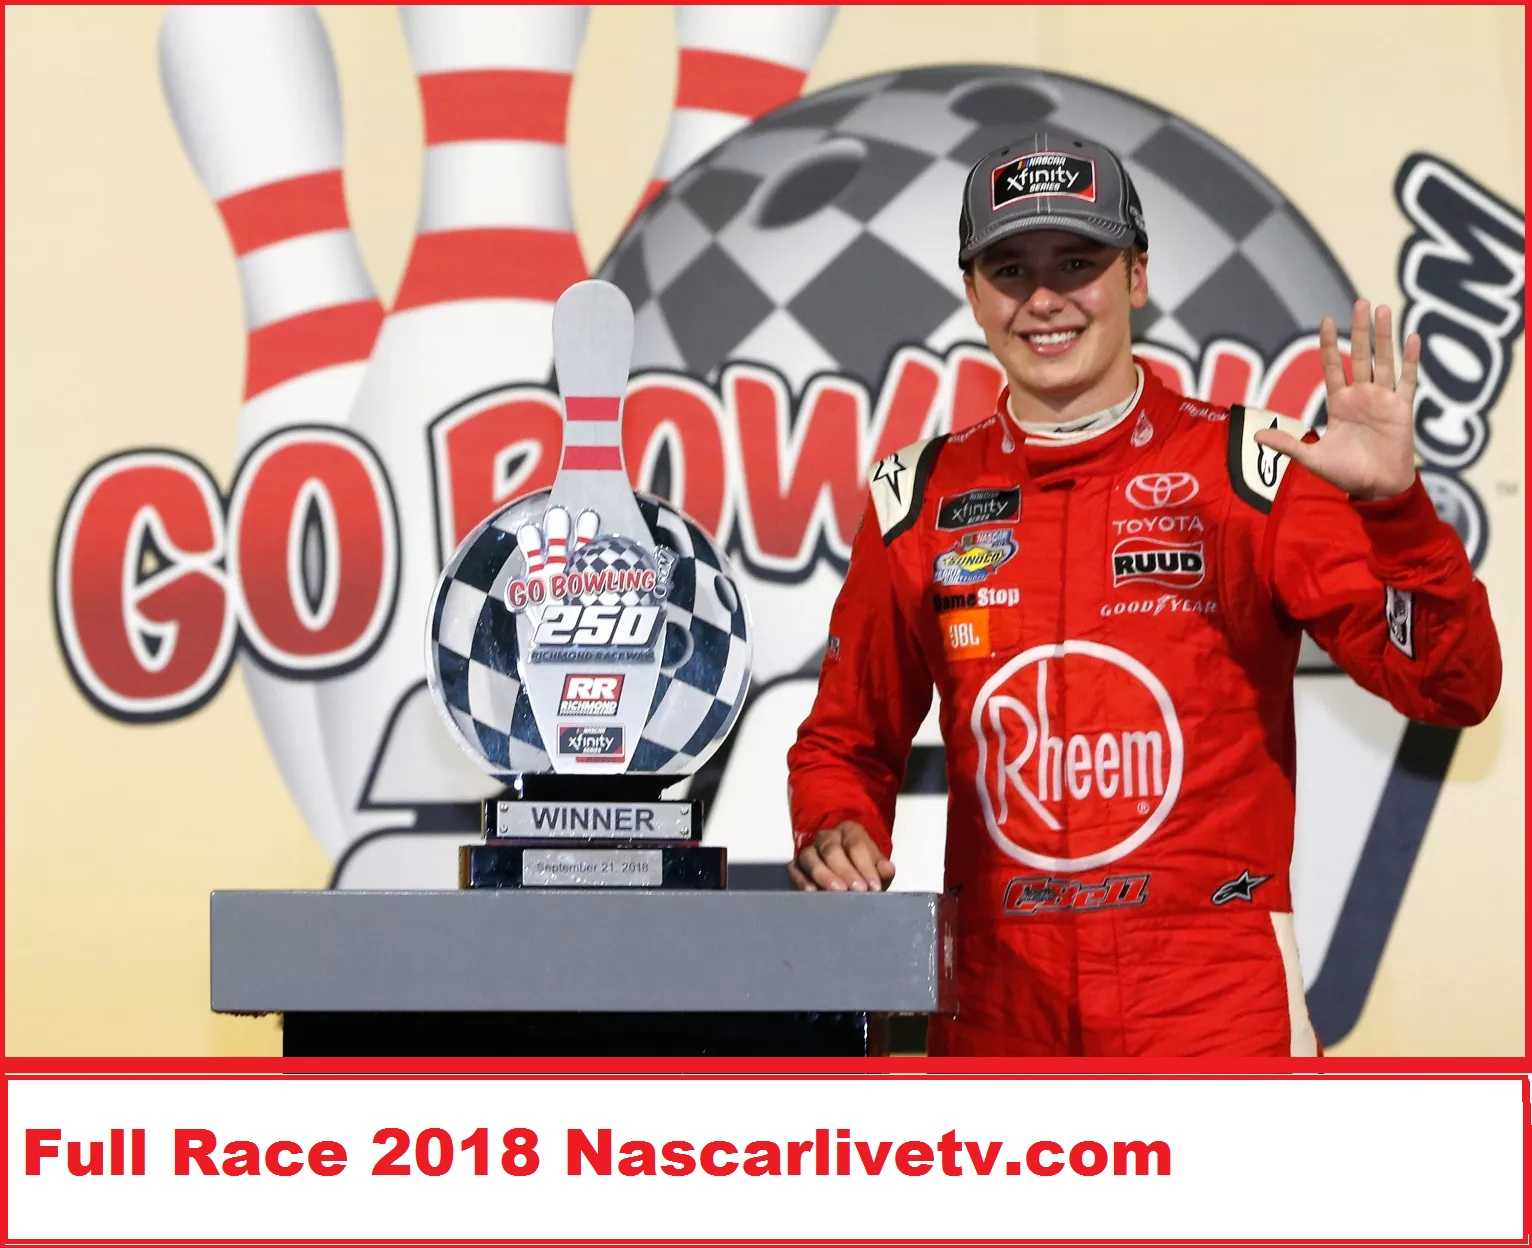 nascar-xfinity-series-gobowling-250-complete-race